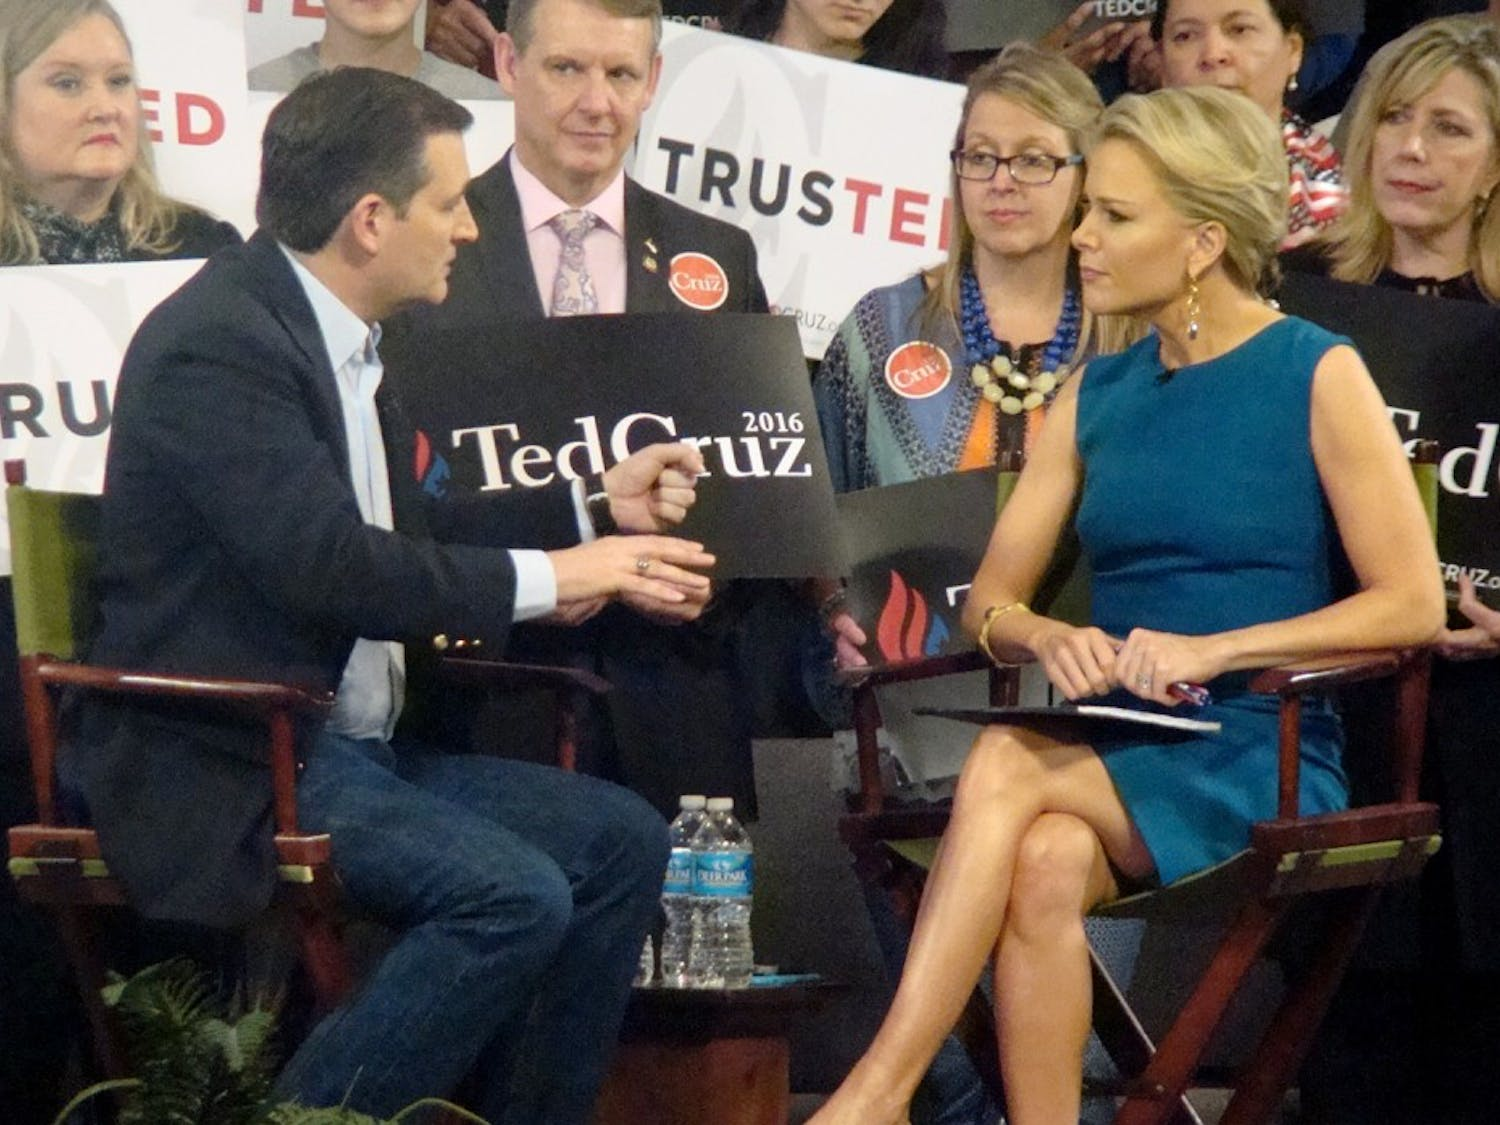 Senater Ted Cruz, presidential candidate, participated in a Q&A session with Megyn Kelly at Calvary Baptist church of Raleigh on Tuesday, March 9th.